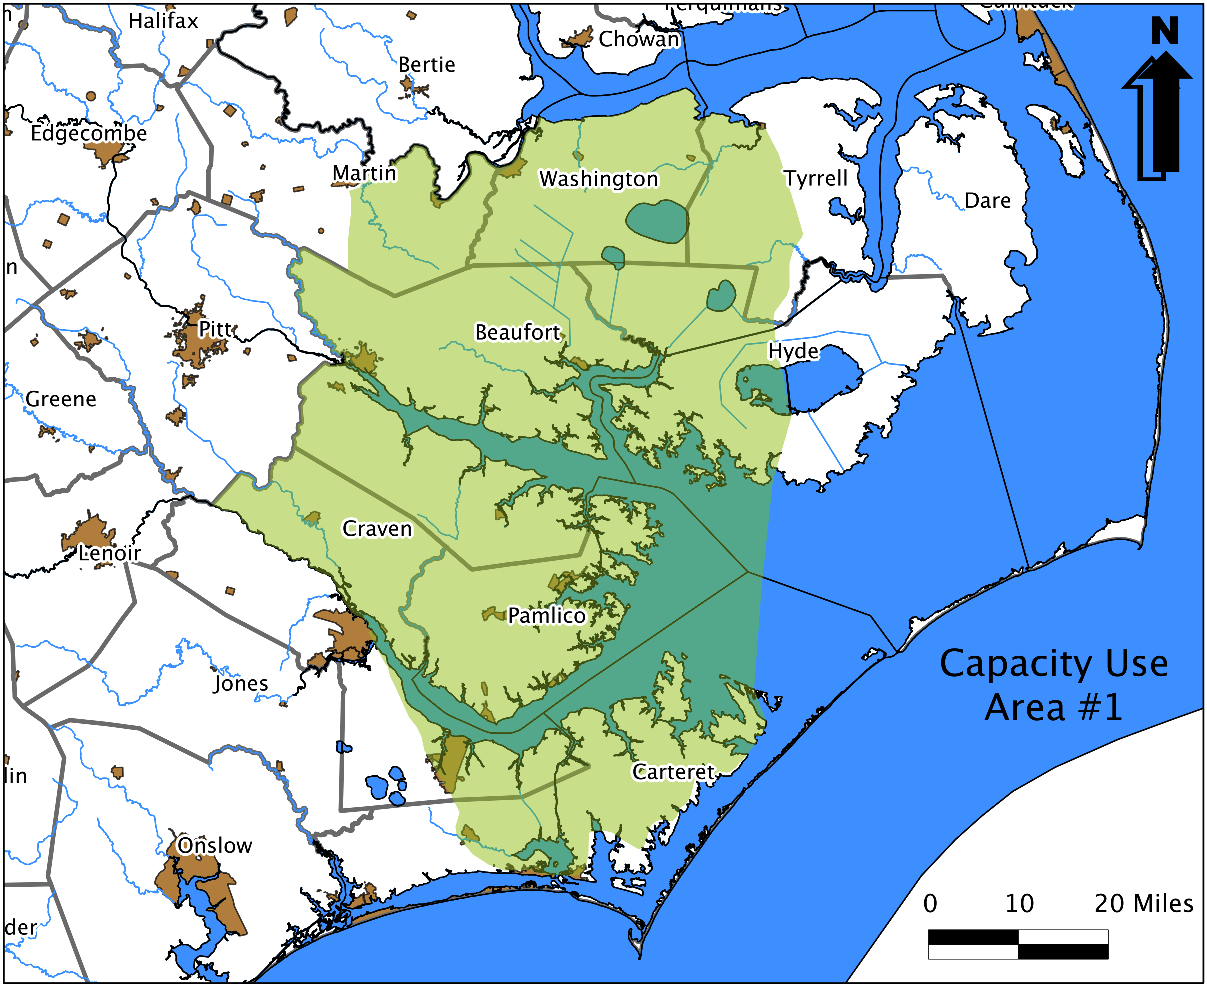 Nc Deq Capacity Use Area 1